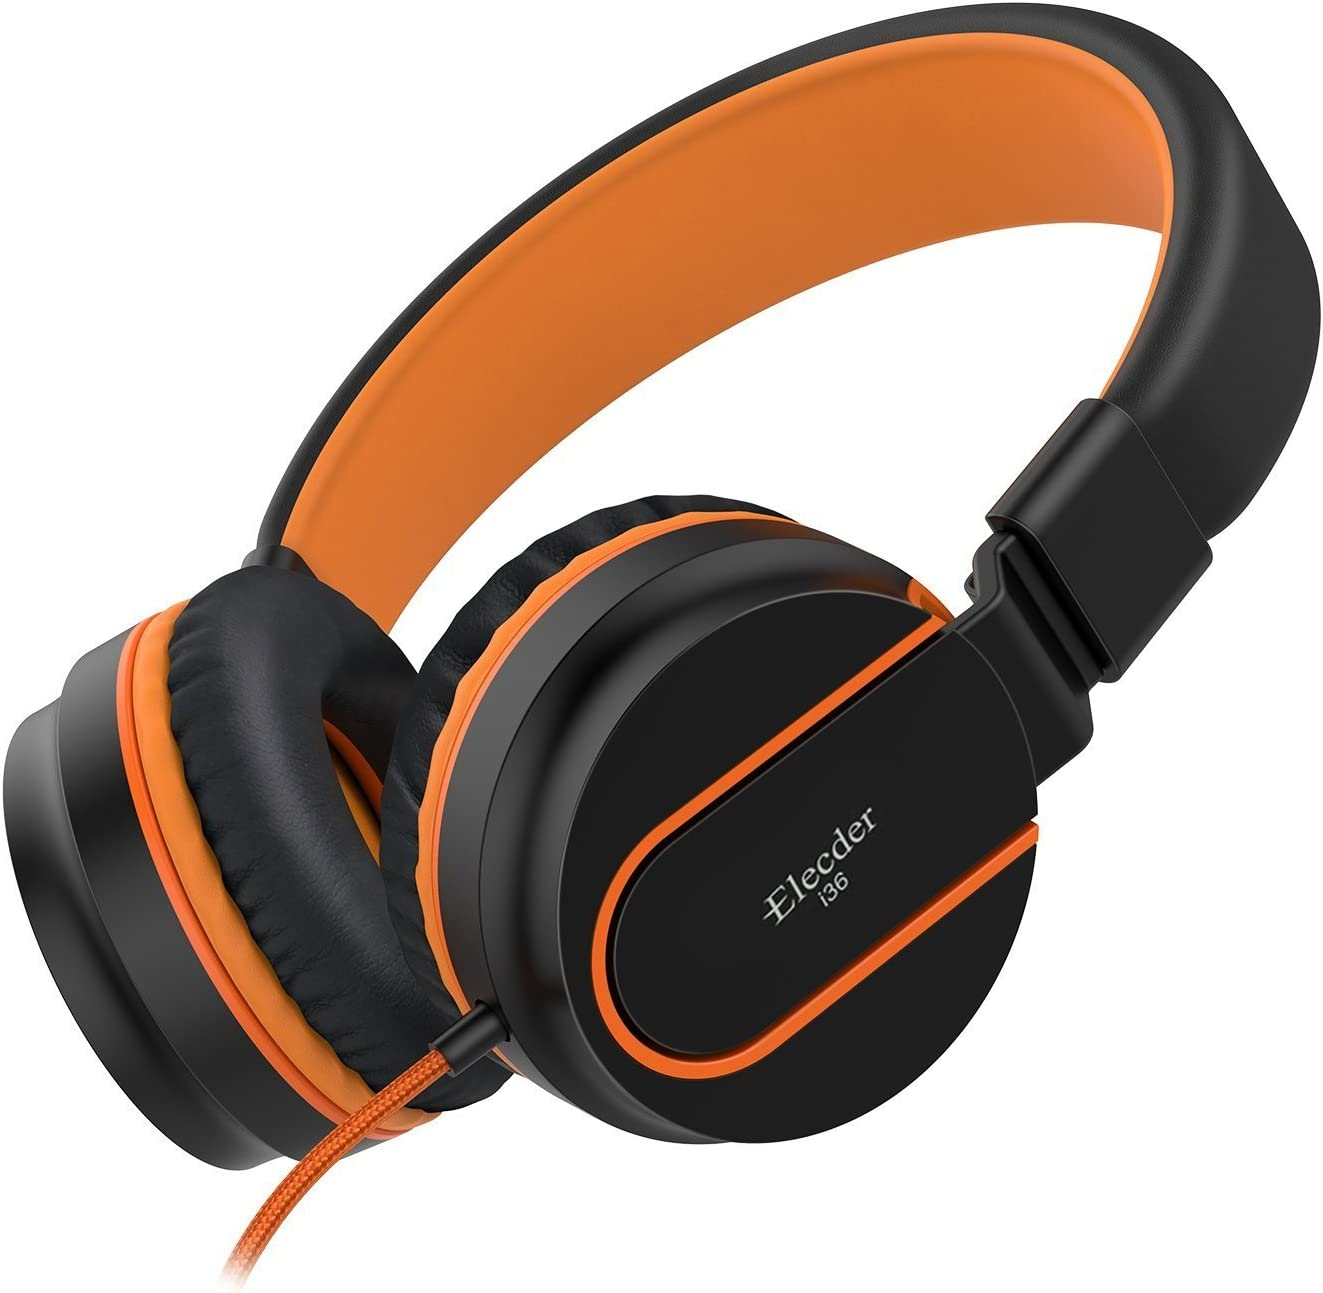 Elecder i36 Kids Headphones Children Girls Boys Teens Foldable Adjustable On Ear Headphones 3.5mm Jack Compatible iPad Cellphones Computer Kindle MP3/4 Airplane School Tablet Black/Orange